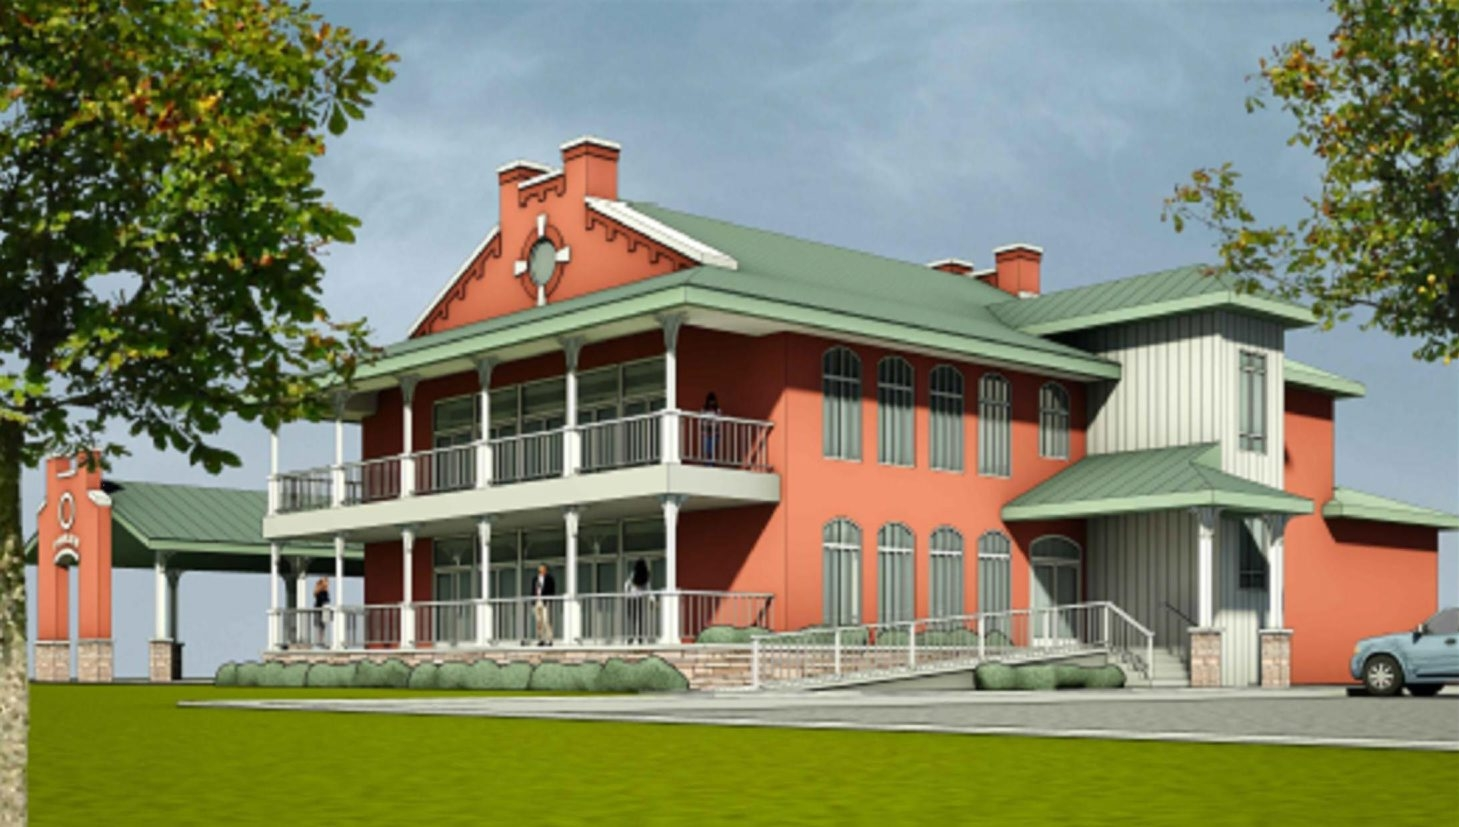 This architect's rendering shows the two-story, 7,500-square-foot lodge planned for Buffalo River Fest Park. It features large porches and a gabled roof resembling that of the old New York Central Freight House.